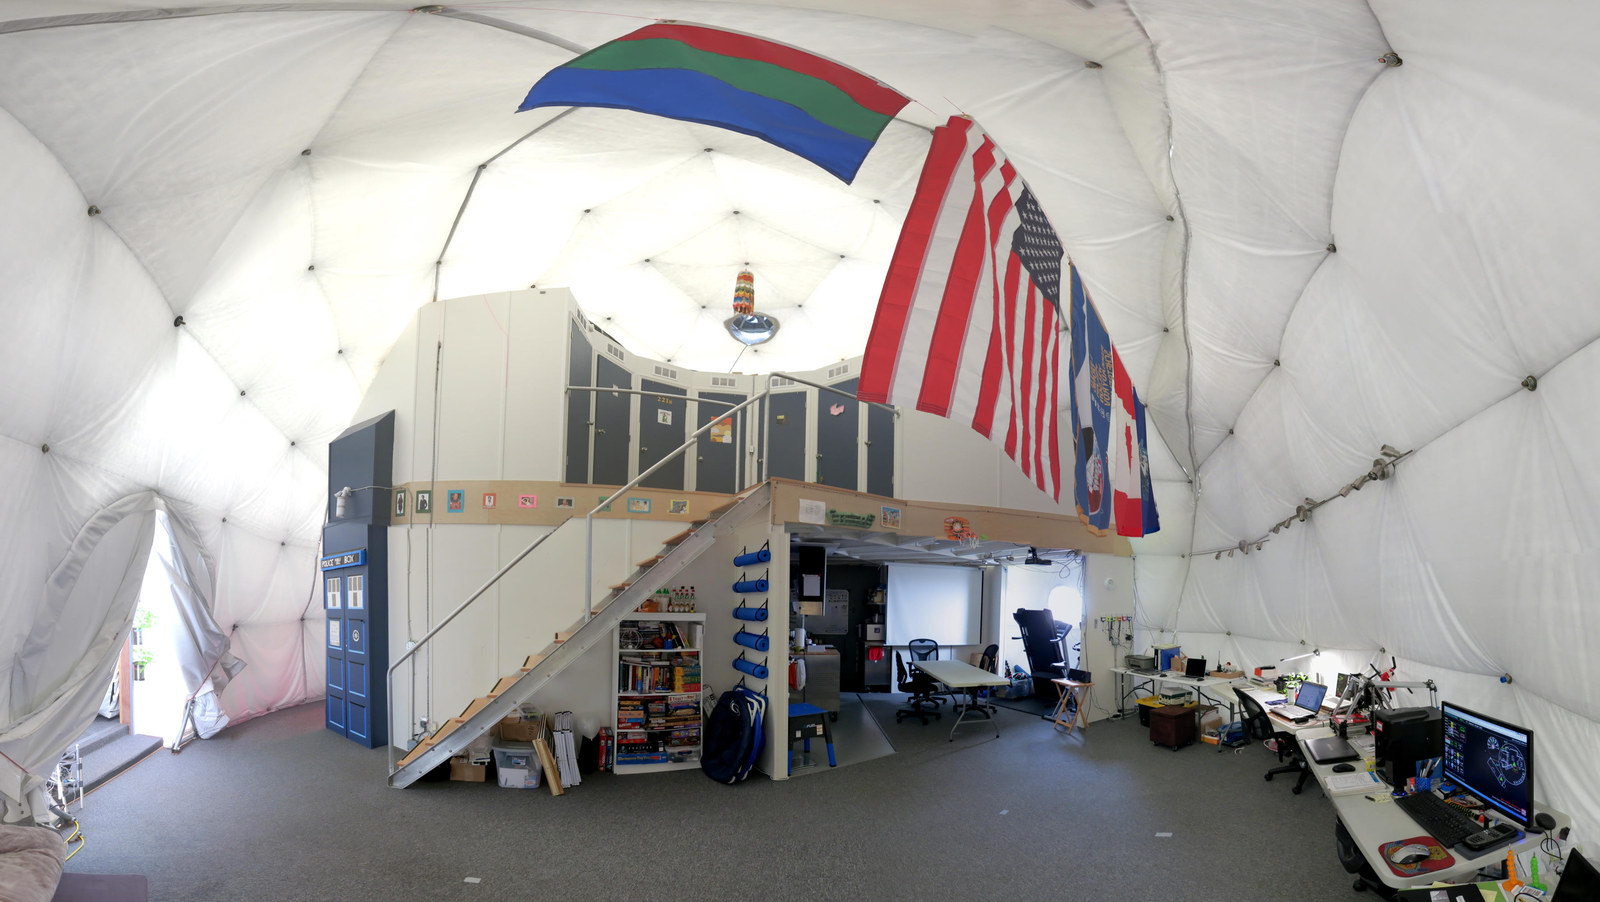 Six People Begin Living In A Dome In Year-Long NASA Experiment